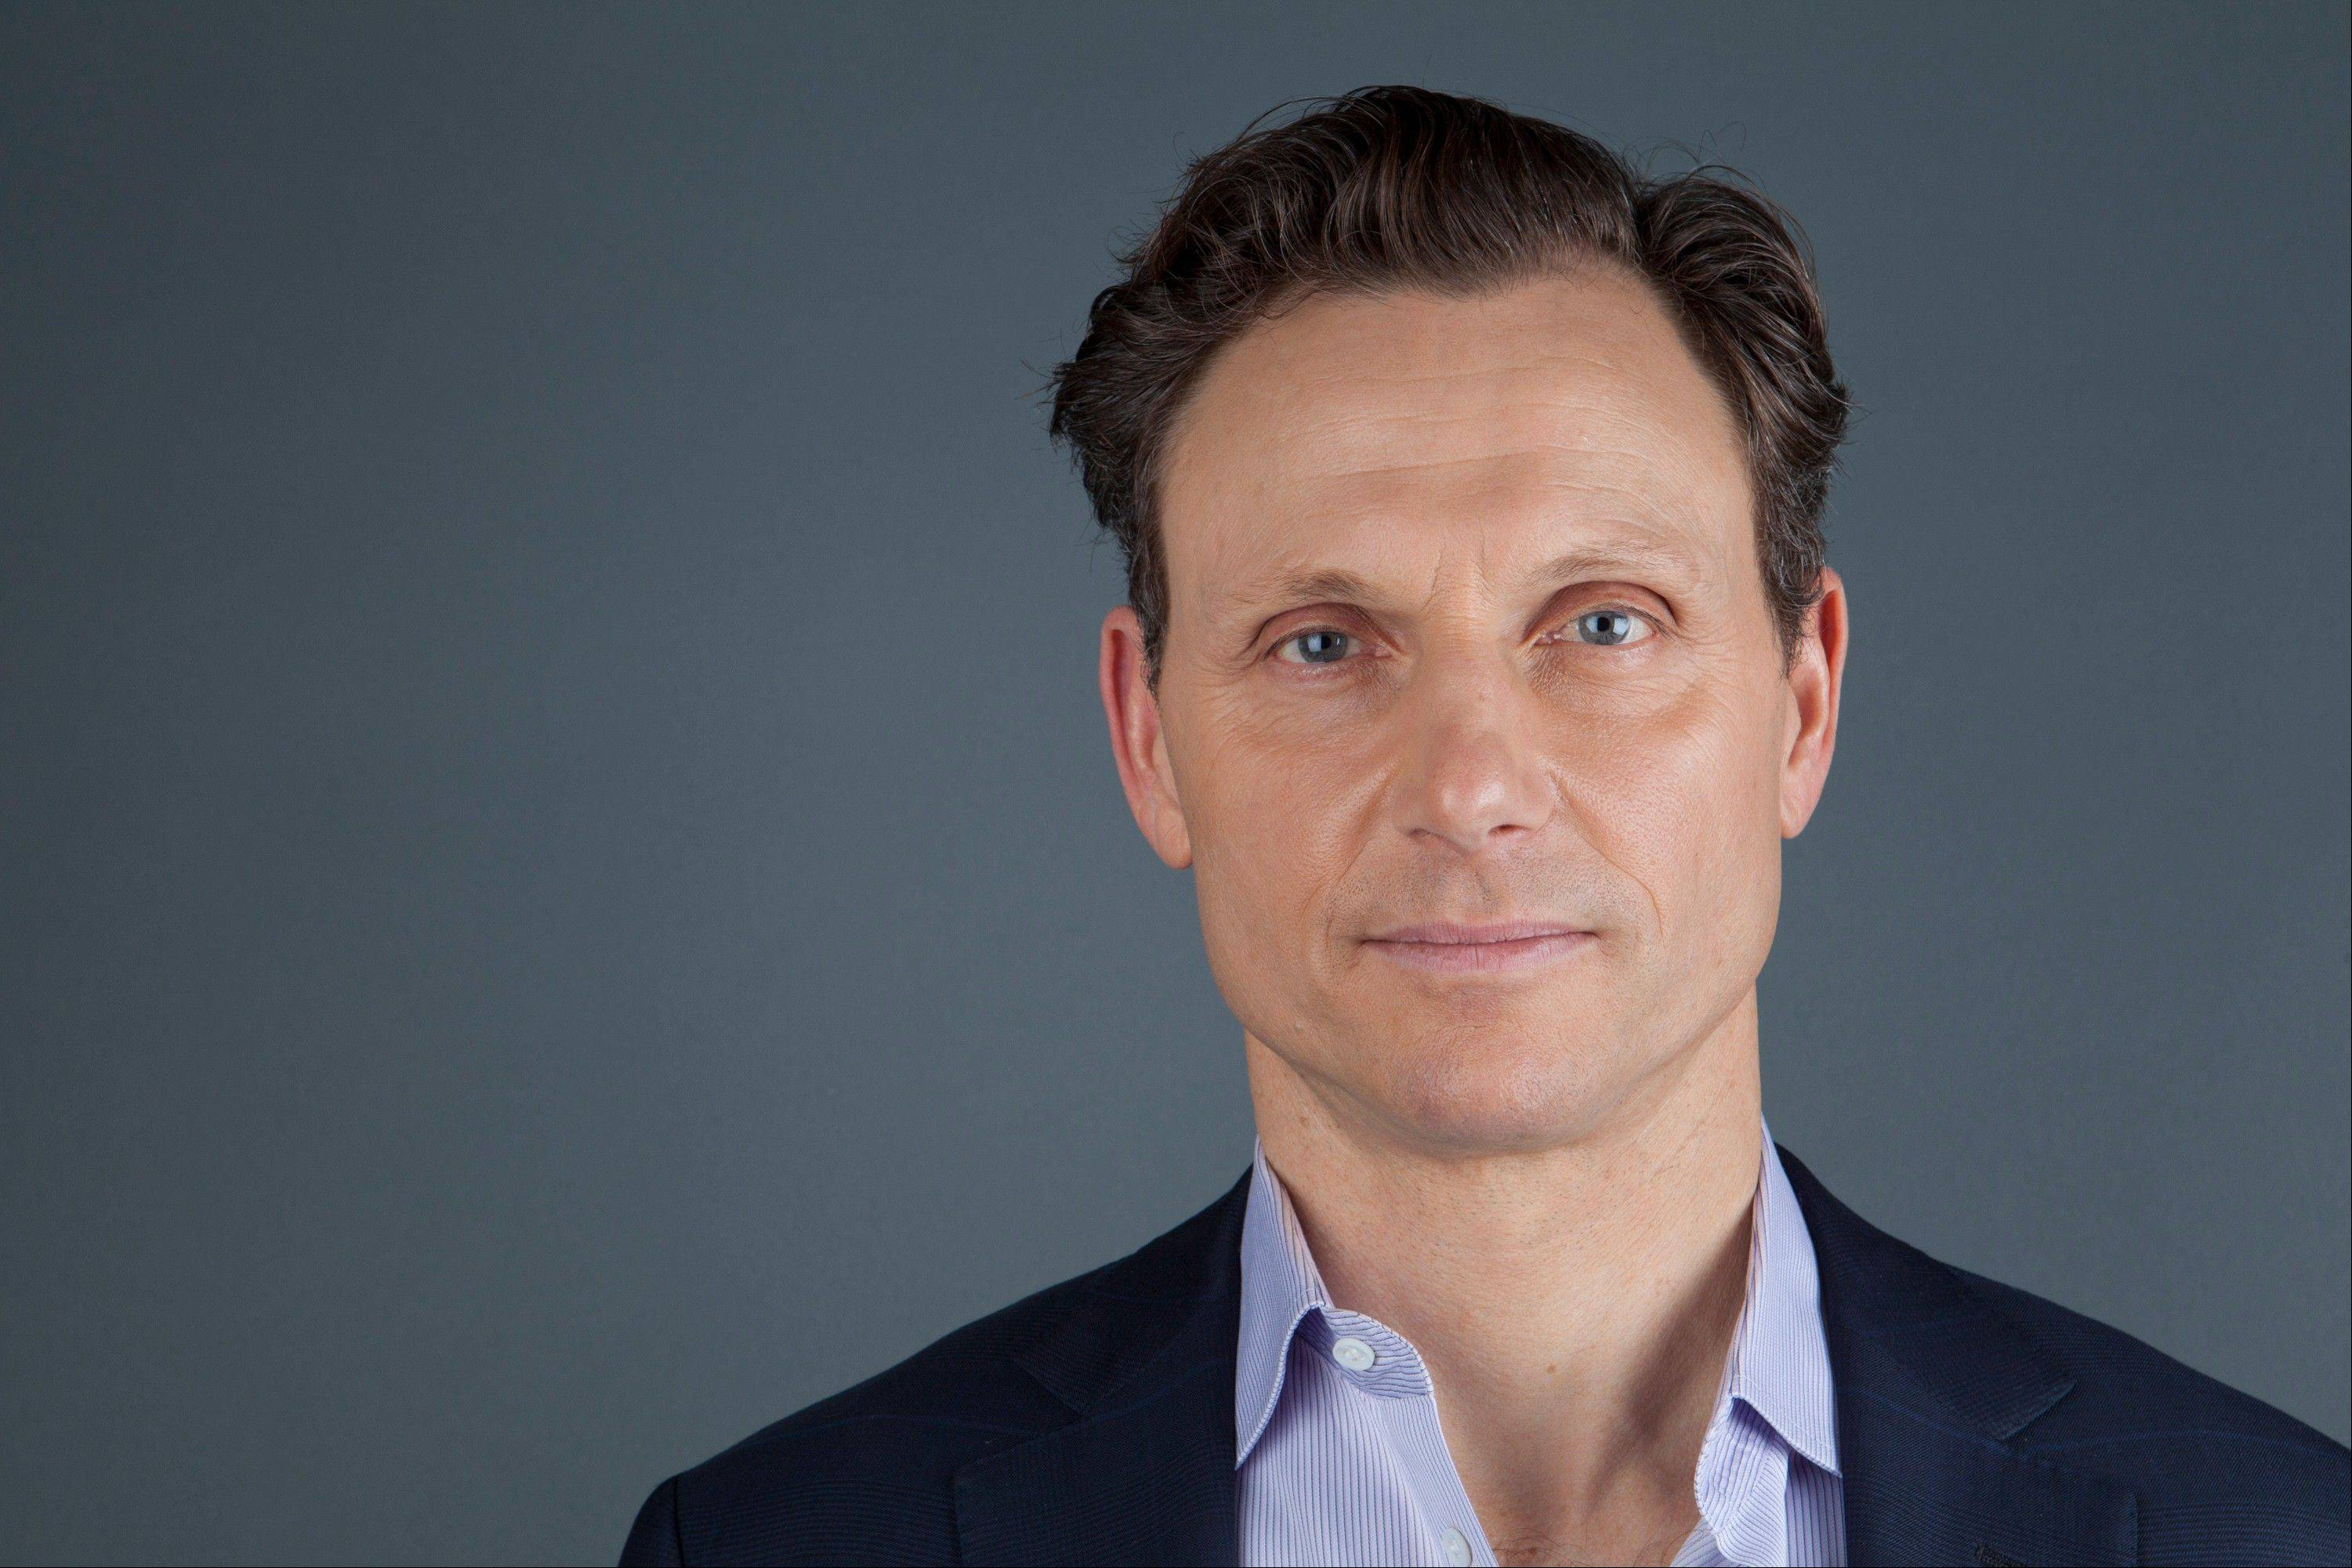 Actor Tony Goldwyn portrays President Fitzgerald Grant, who is having an affair with his former communications director, on the ABC television series �Scandal.�